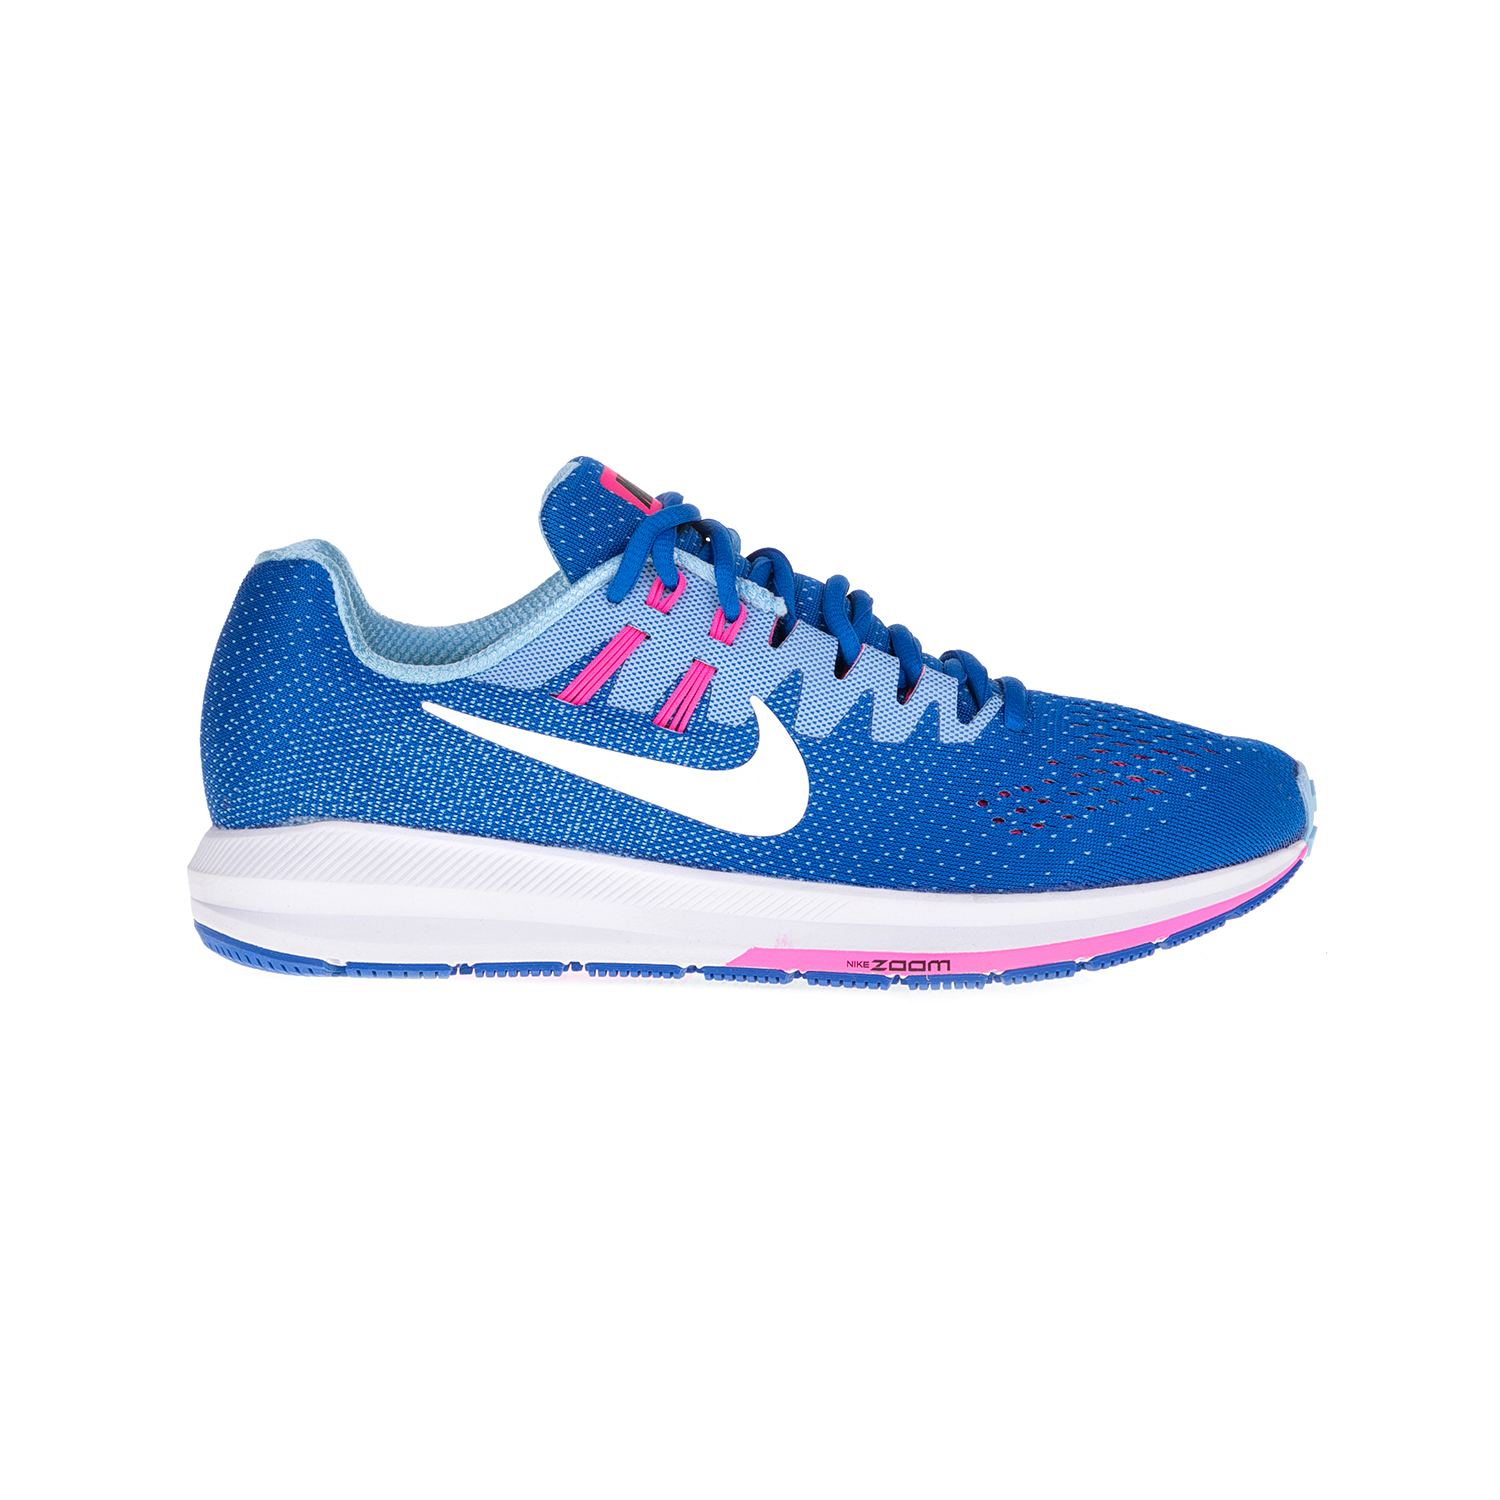 NIKE – Γυναικεία παπούτσια NIKE AIR ZOOM STRUCTURE 20 μπλε